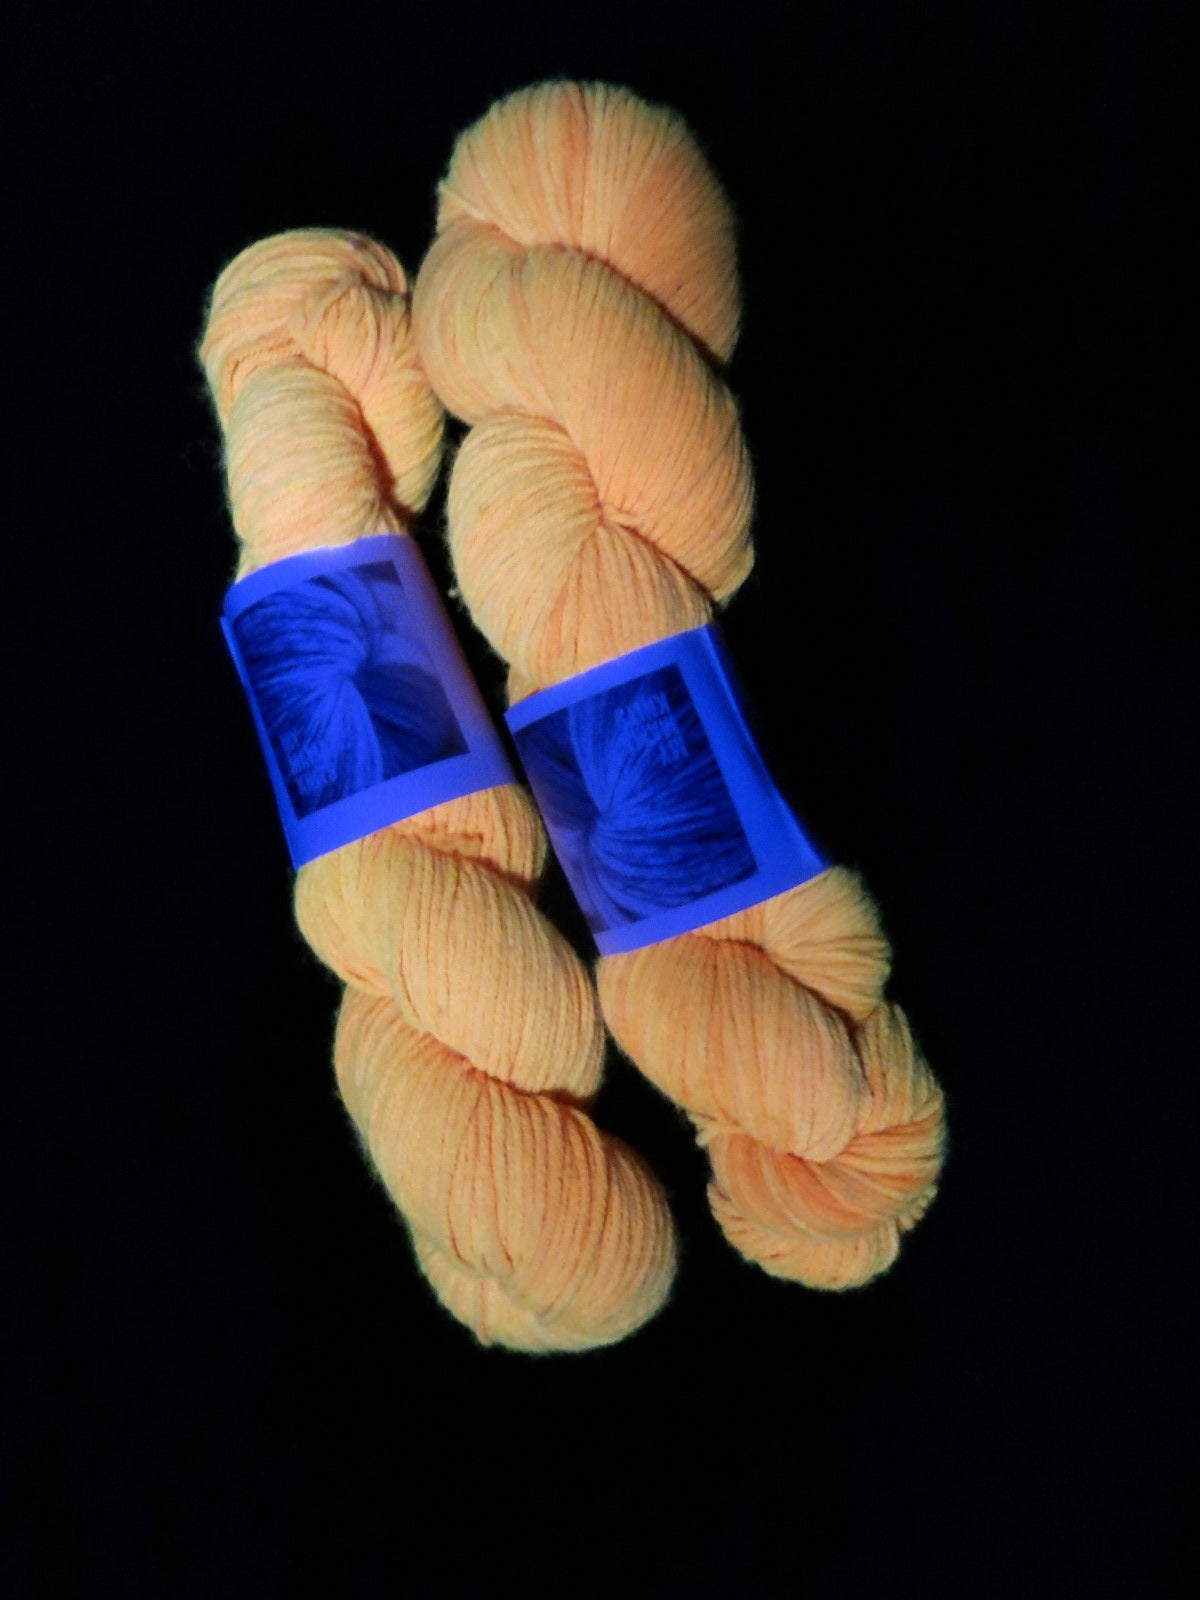 uv reactive orange yarn fluorescing under blacklight